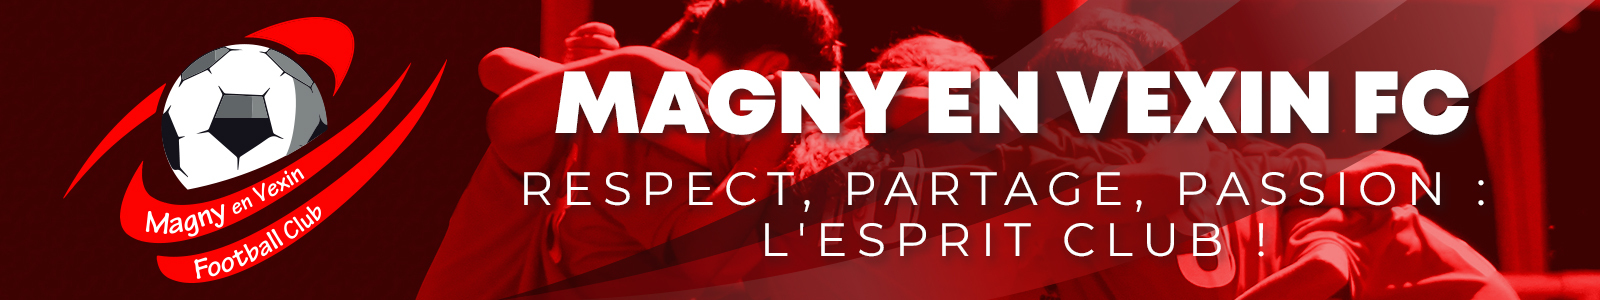 MAGNY EN VEXIN FOOTBALL CLUB : site officiel du club de foot de MAGNY EN VEXIN - footeo